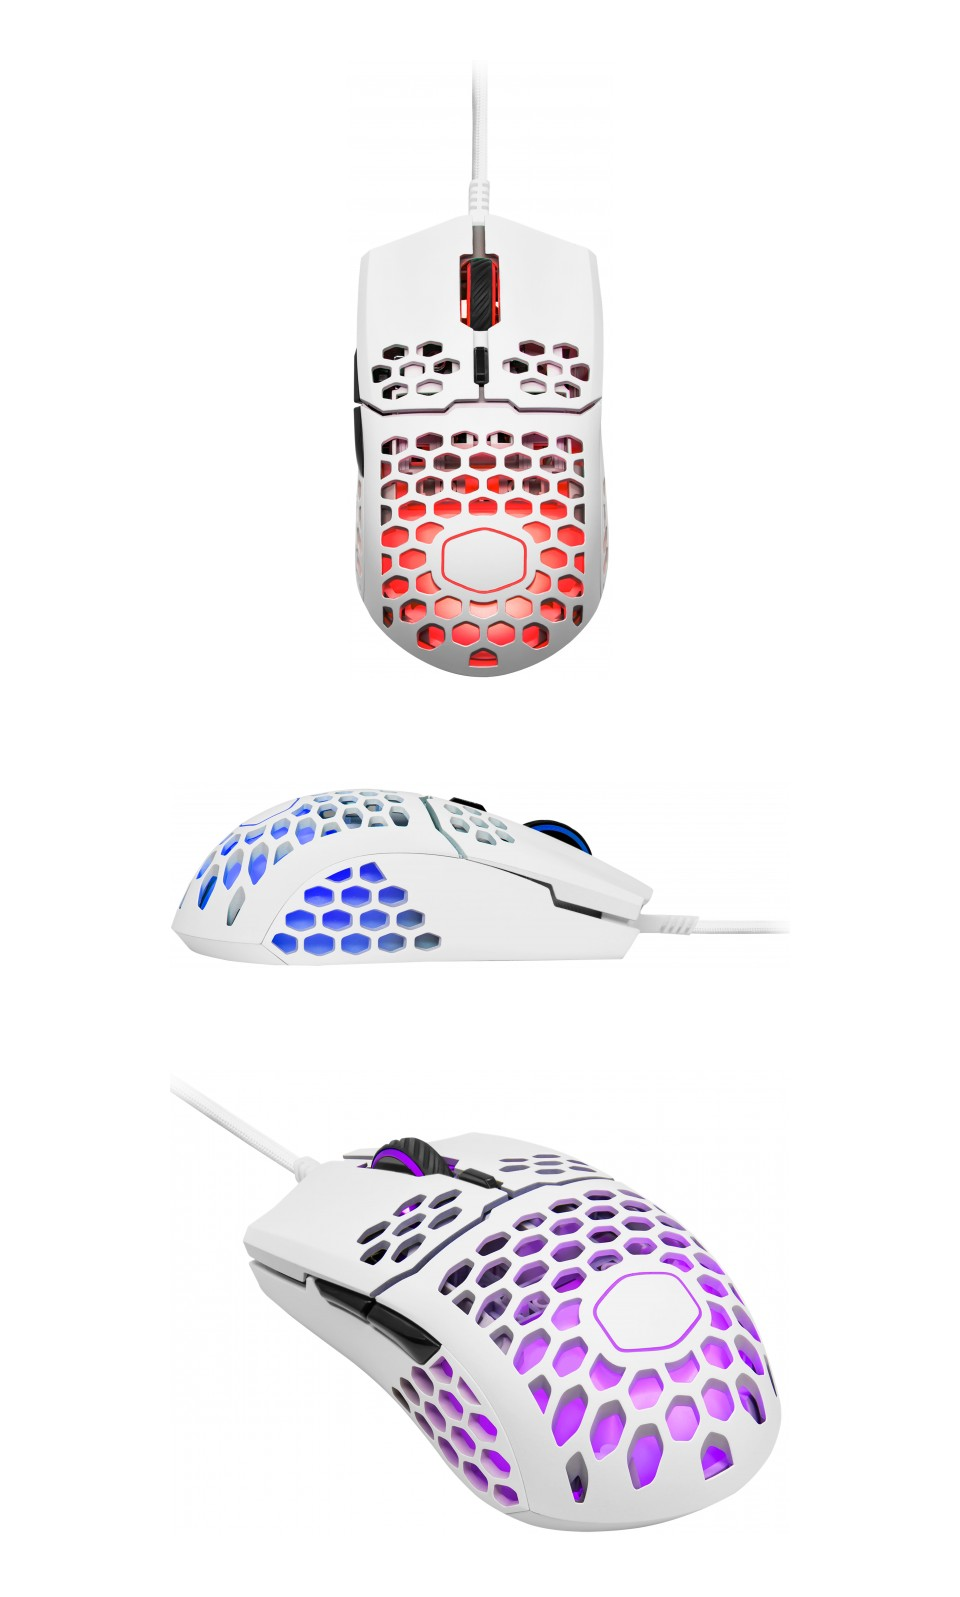 Cooler Master MM711 RGB Gaming Mouse Matte White product